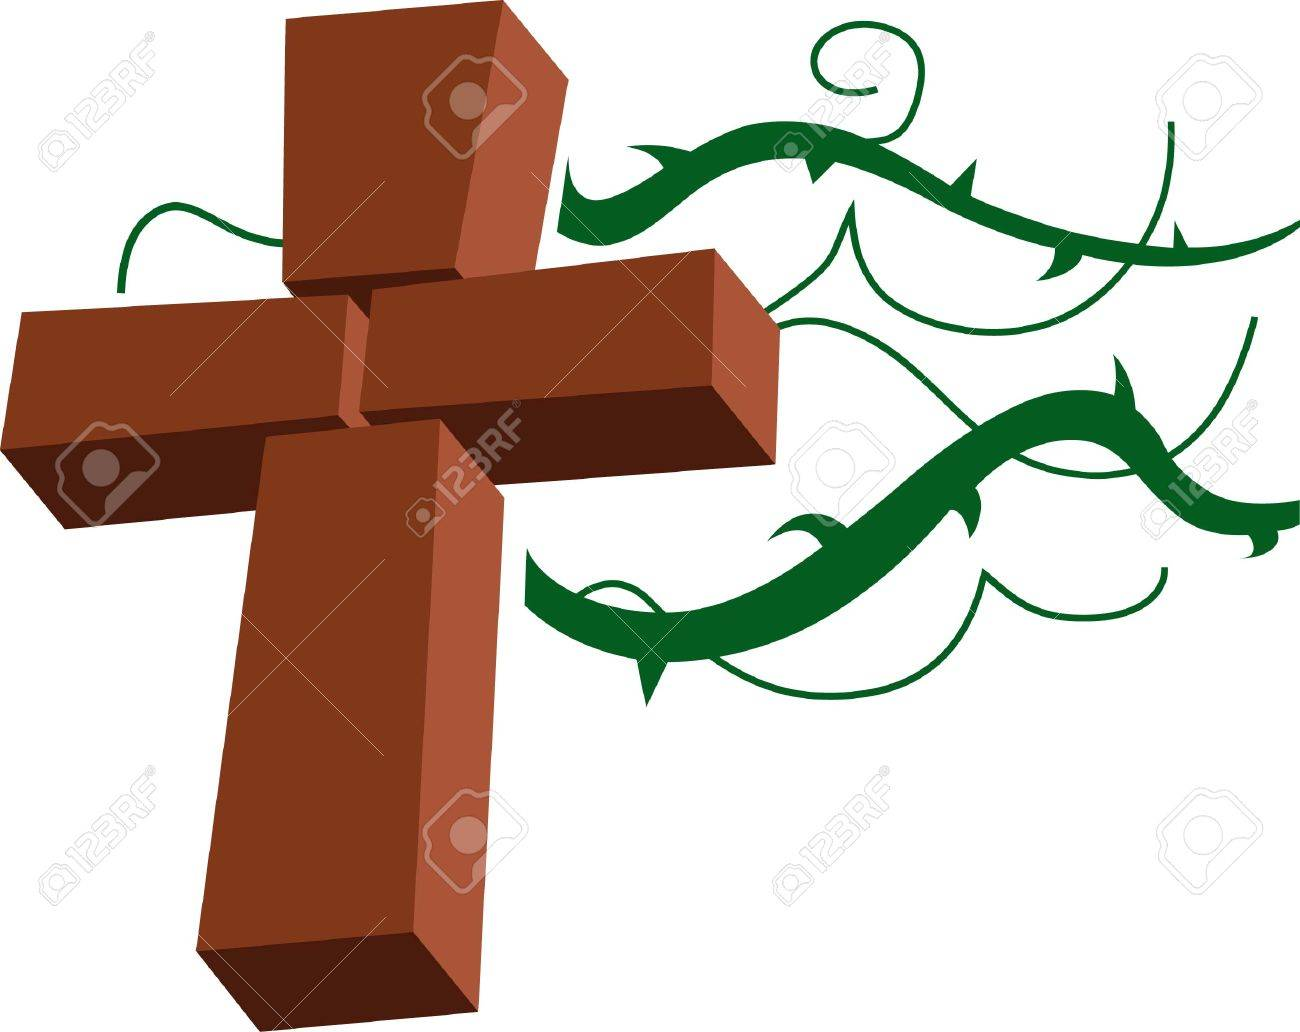 Display your faith with a symbol of christs sacrifice royalty display your faith with a symbol of christs sacrifice stock vector 45280912 biocorpaavc